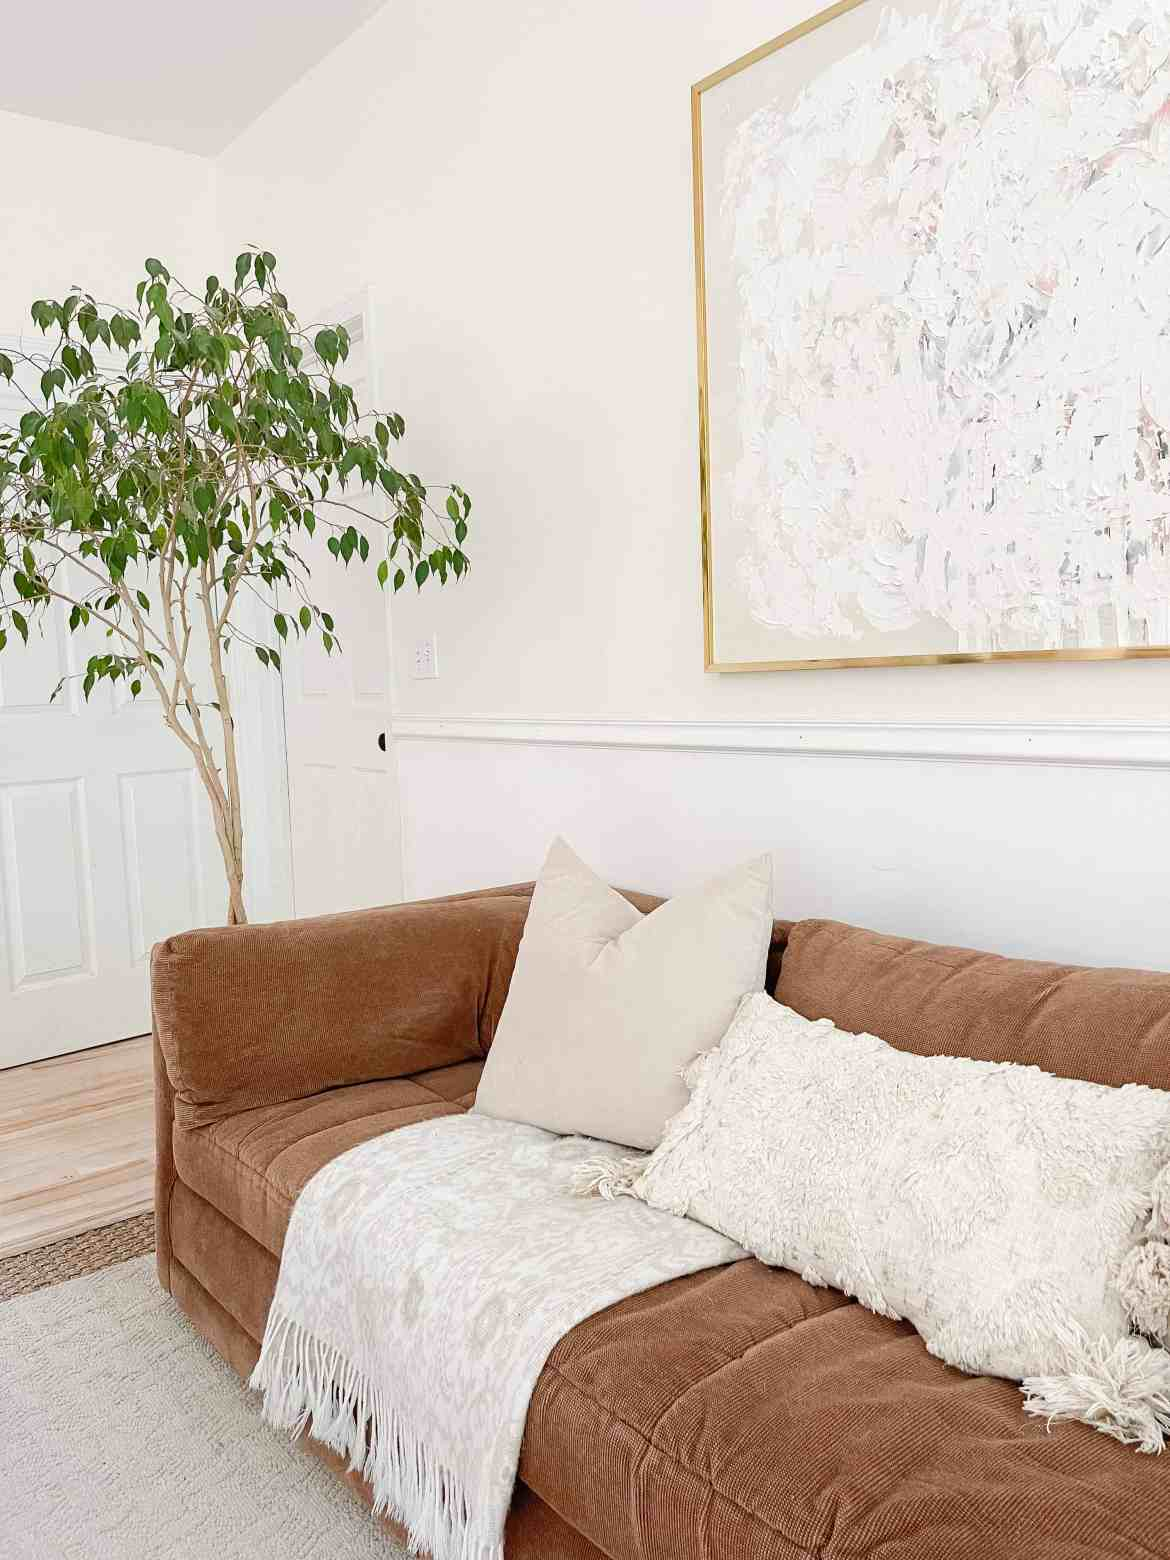 ficus tree abstract art styled living room